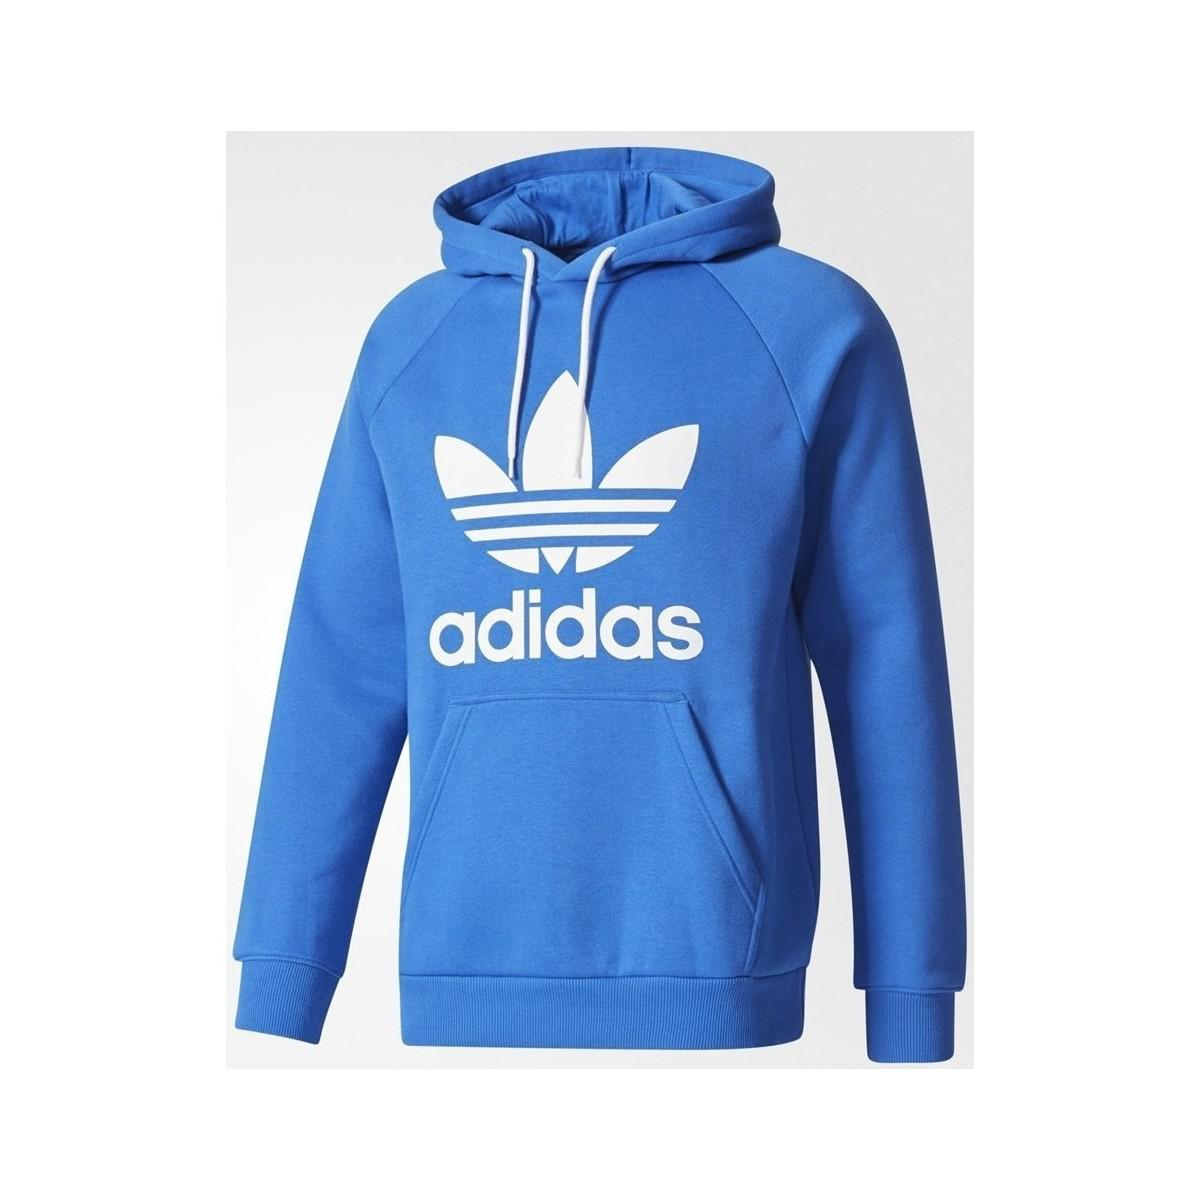 best website 298df 11f27 Adidas - Originals Trefoil Men s Sweatshirt In Blue for Men - Lyst. View  fullscreen